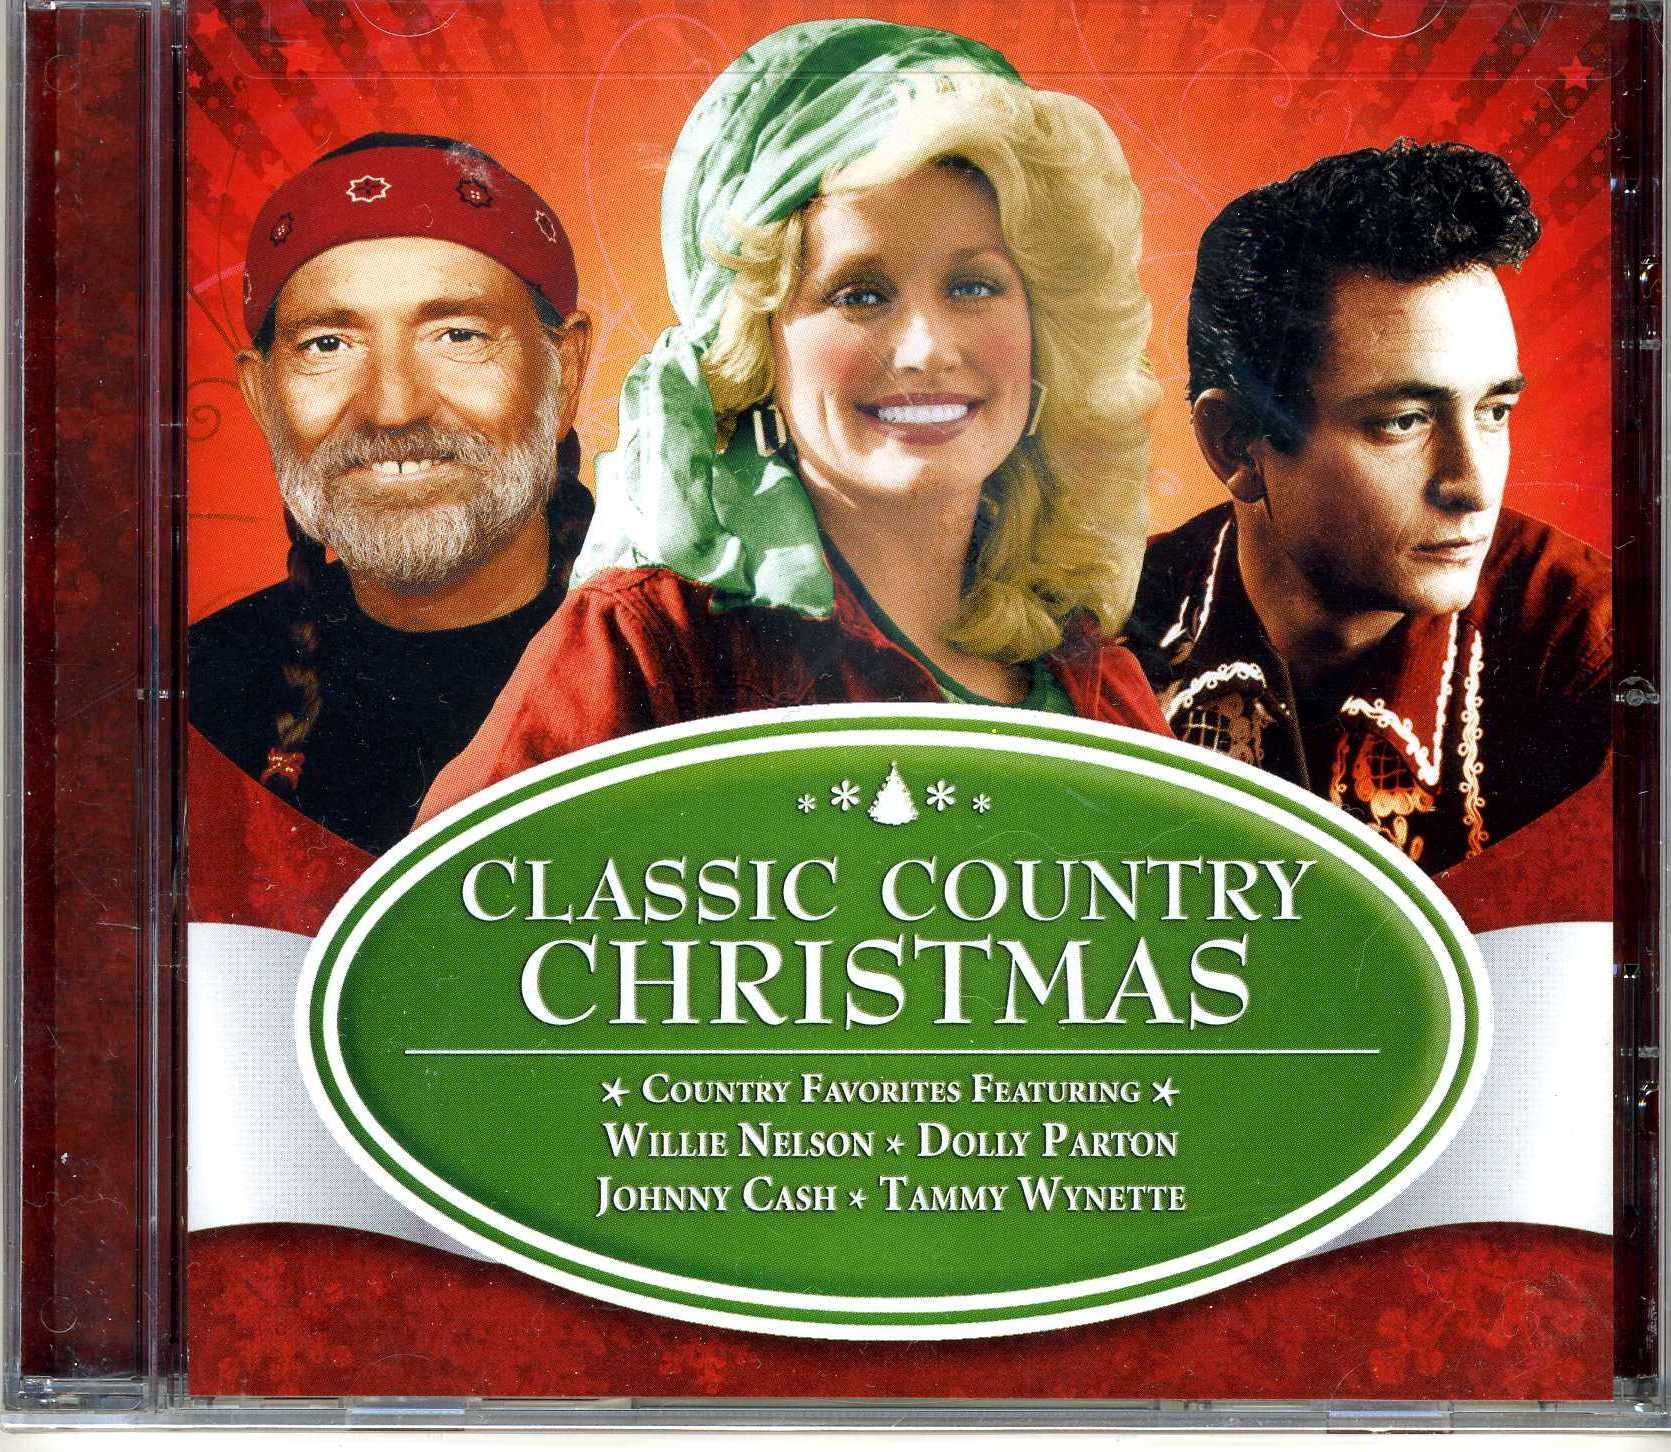 Classic Country Christmas - Featuring Willie Nelson, Dolly Parton ...